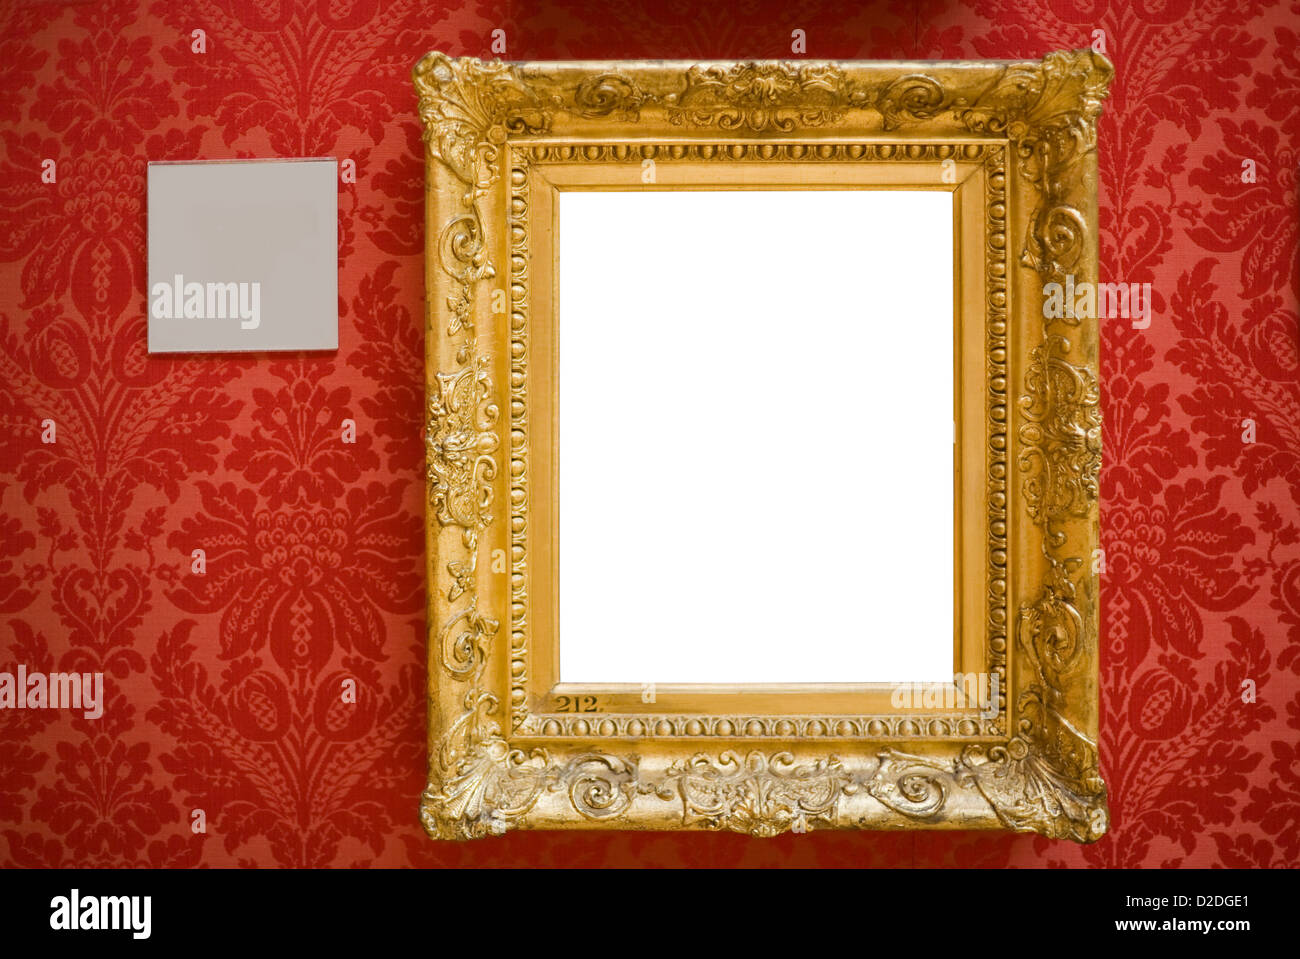 Ornate gold frame hanging on an art gallery wall, accompanied by a blank description label. - Stock Image